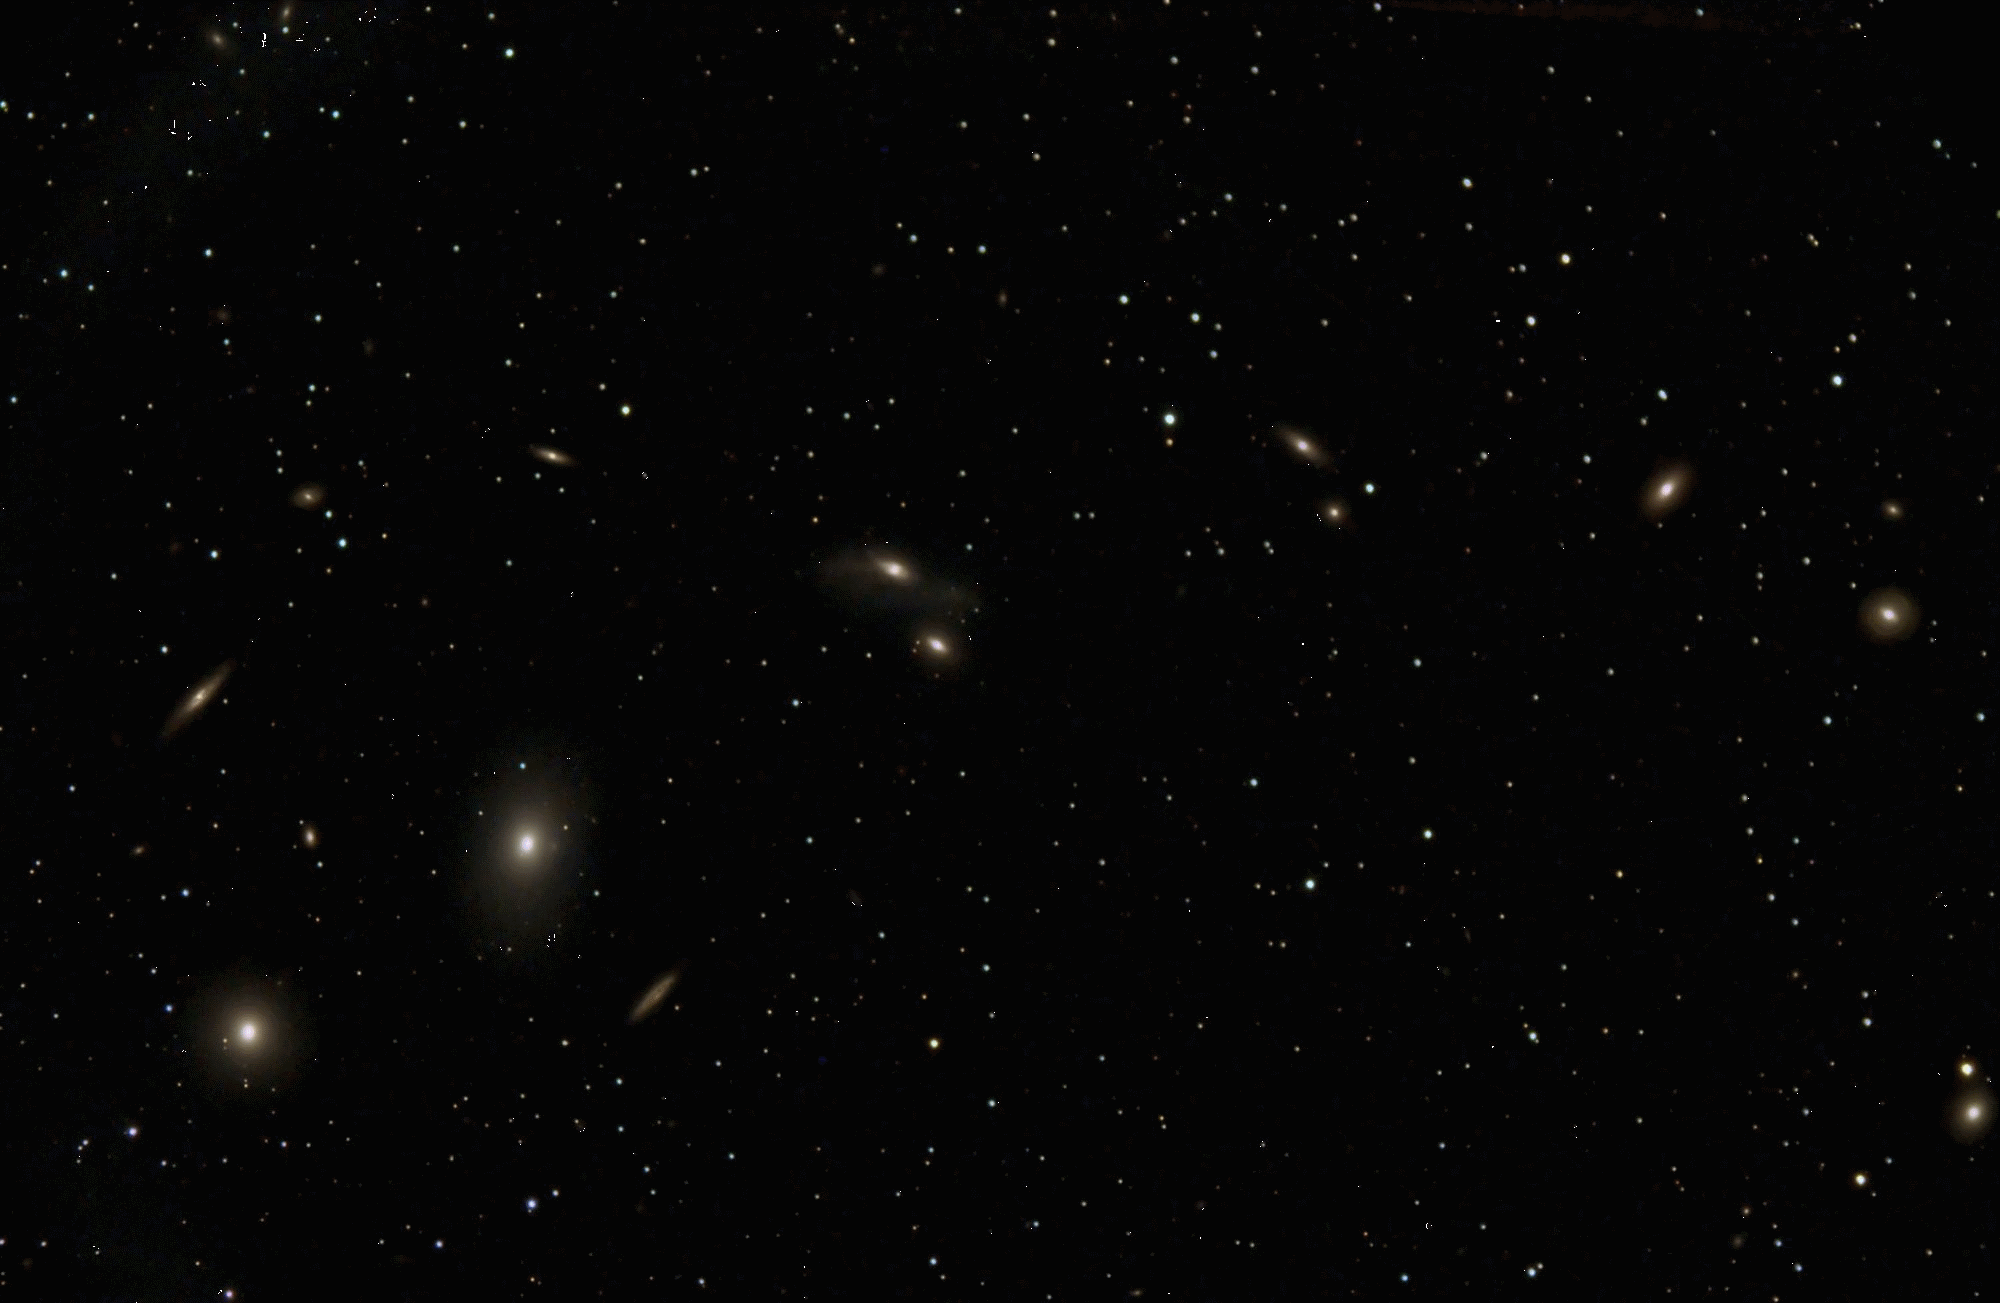 Markarian's Chain of Galaxies in Virgo, by Brian G.